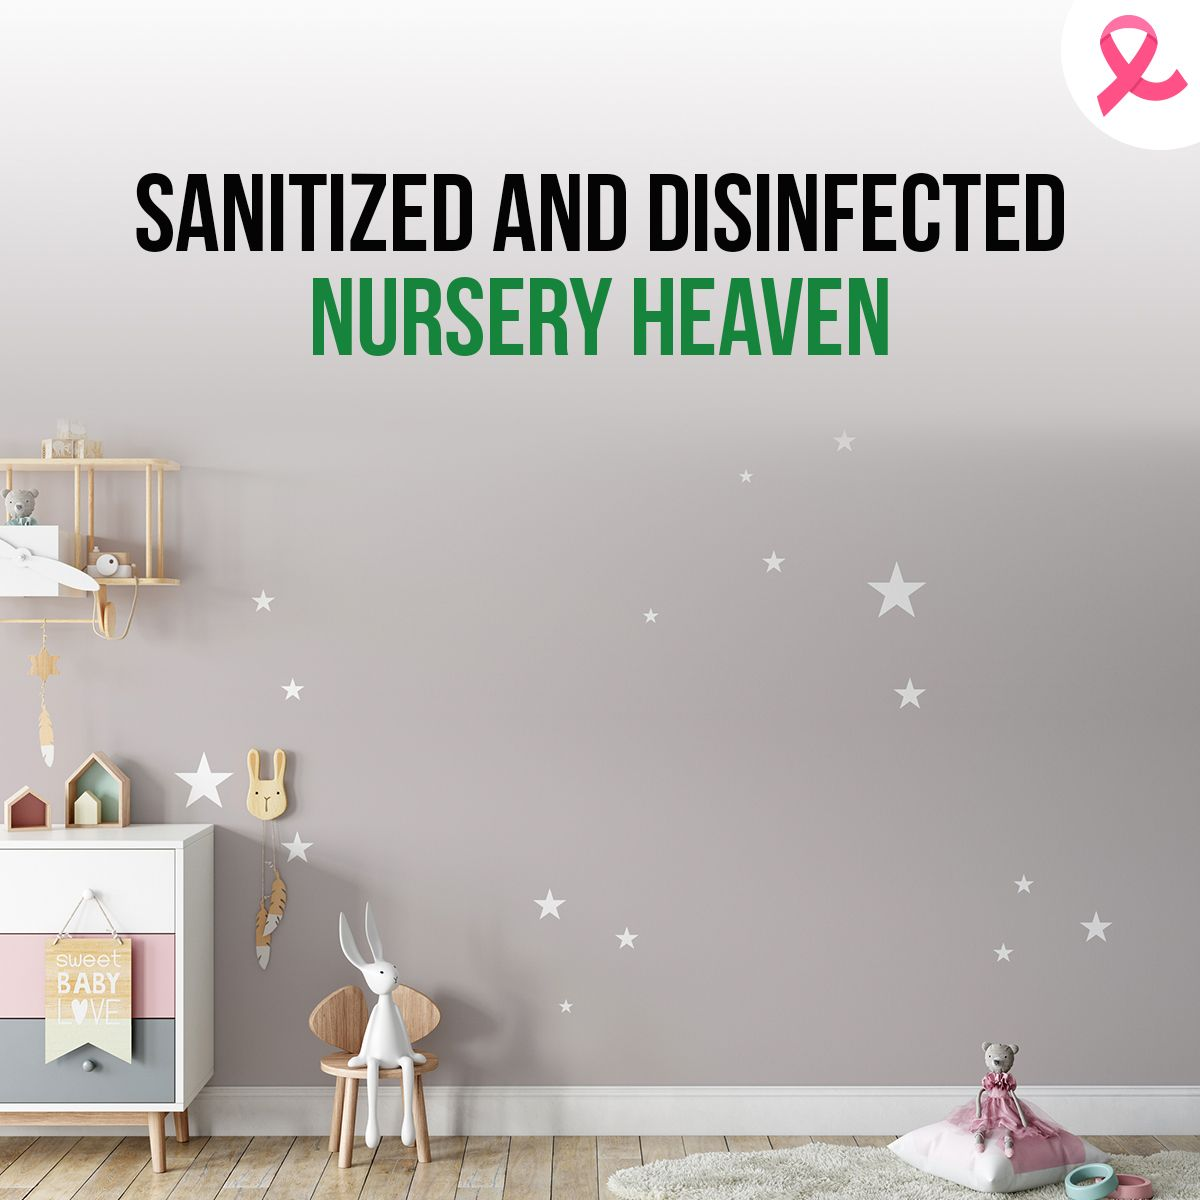 Sanitized and Disinfected Nursery Heaven